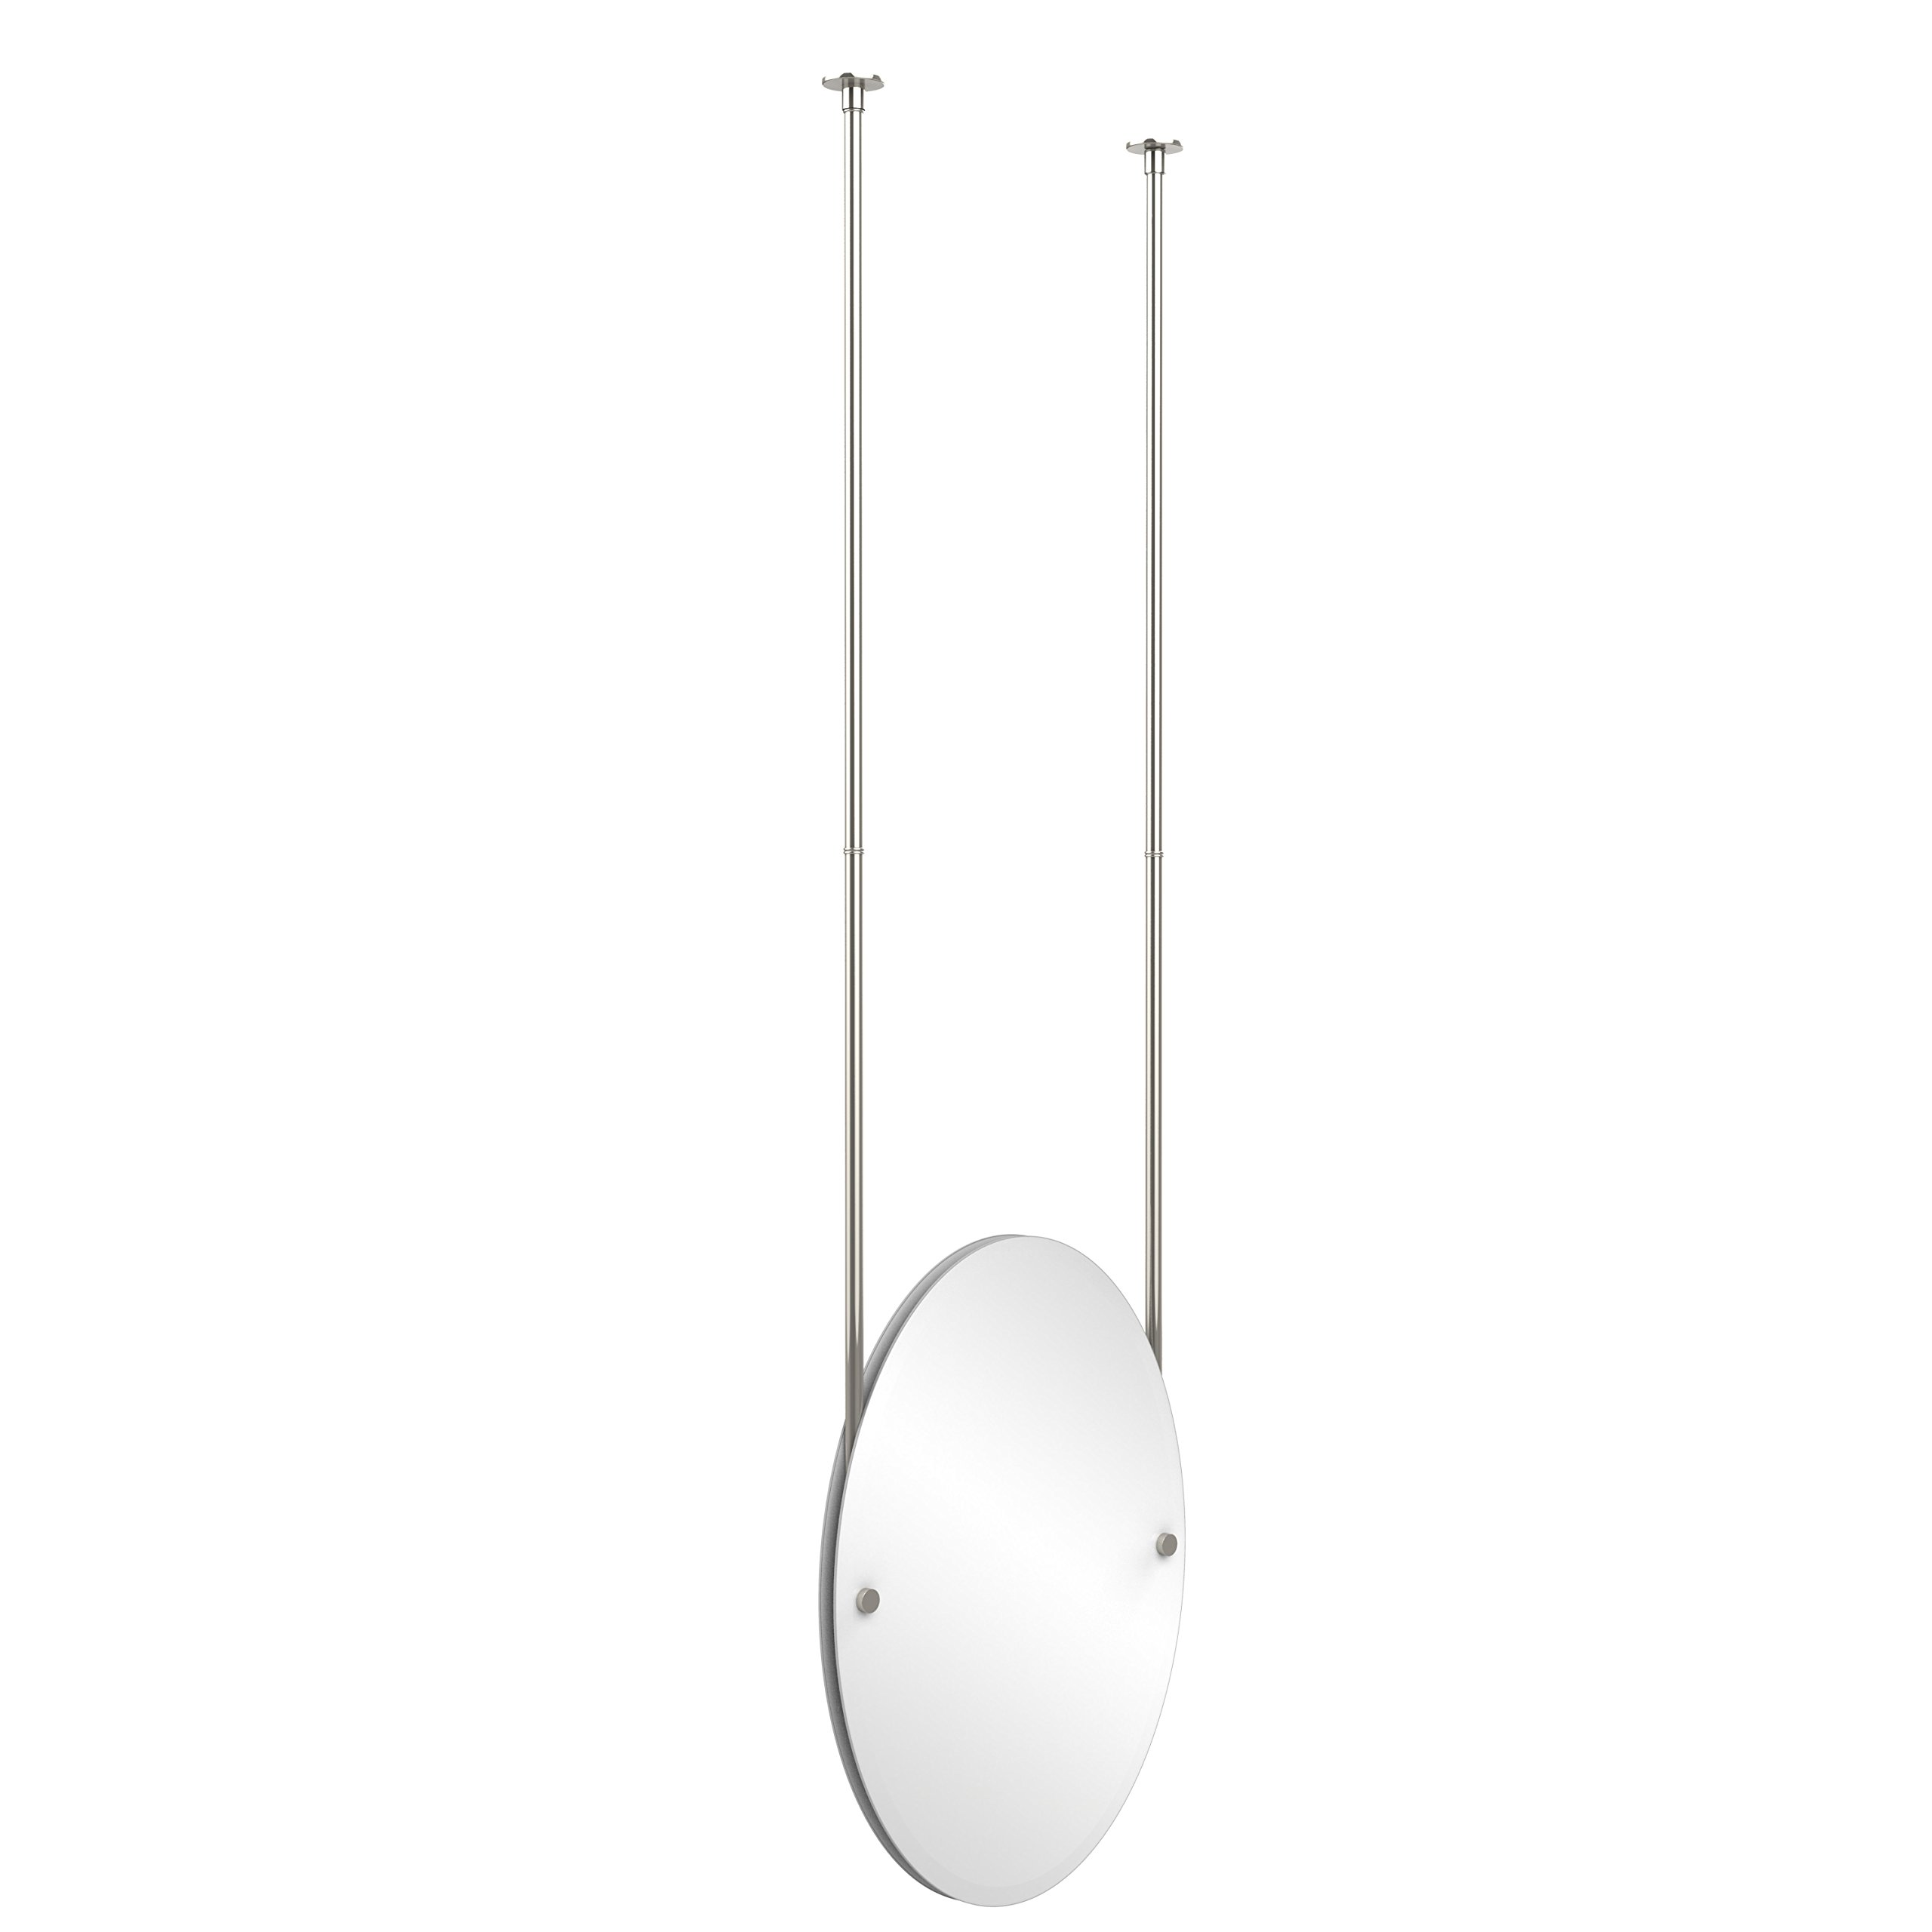 Allied Brass CH-91-PNI  Oval Ceiling Hung Mirror, Polished Nickel